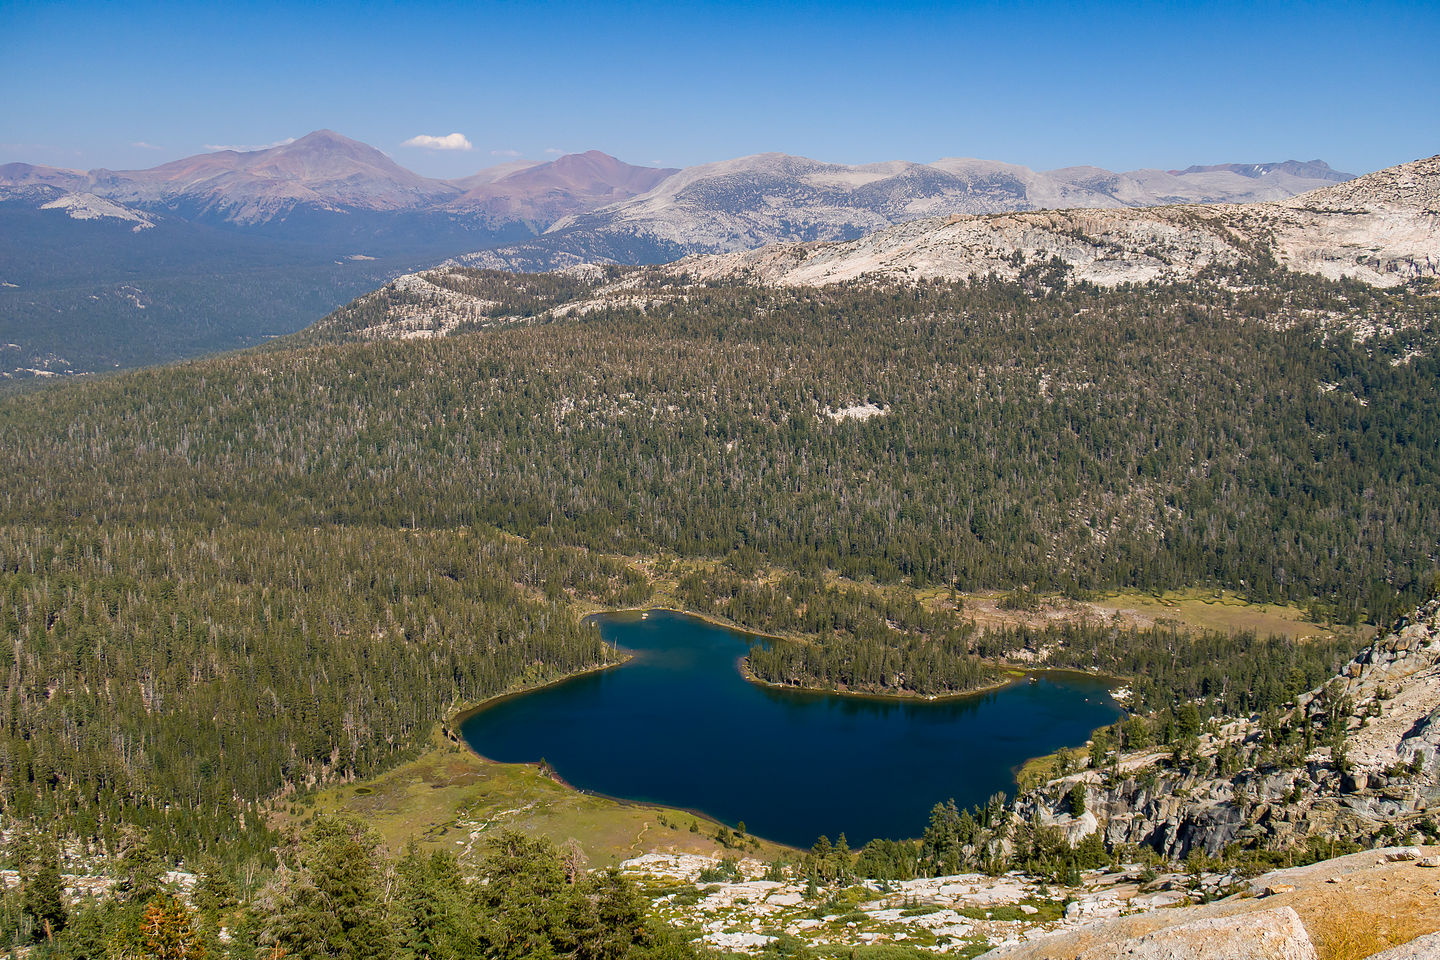 View of Elizabeth Lake from Unicorn Peak